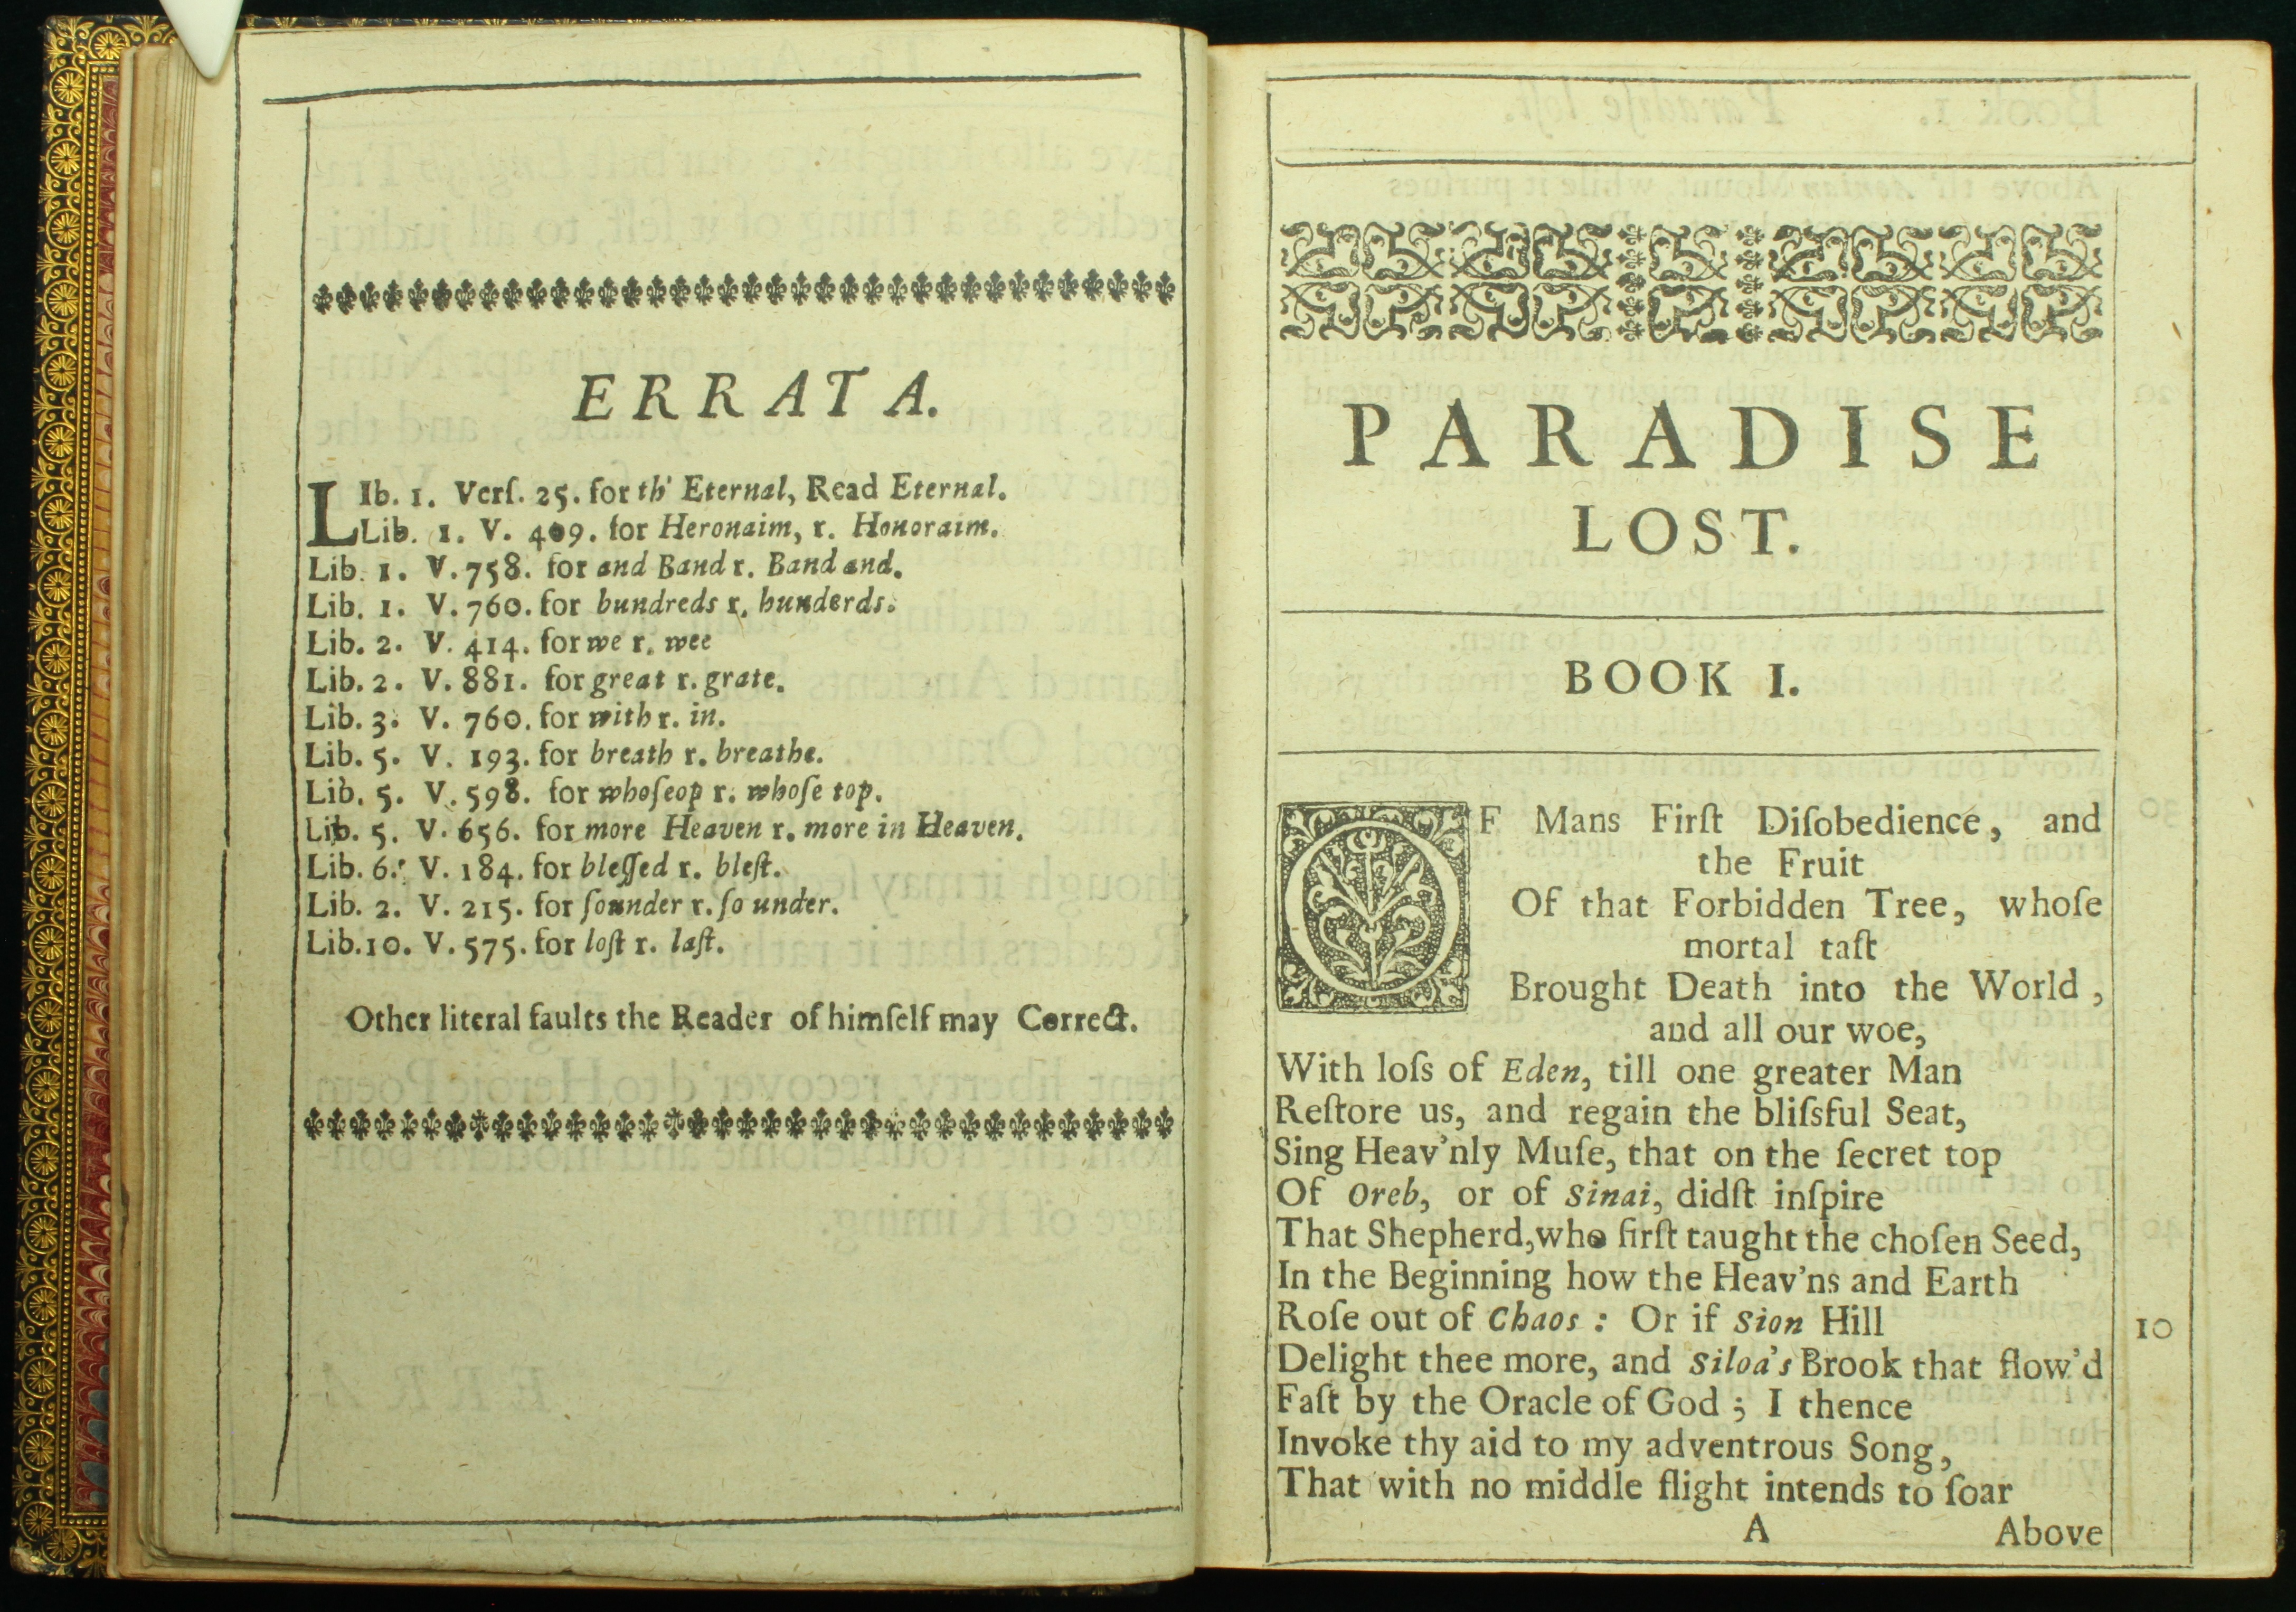 miltons most important paradise book essay Free papers and essays on john milton`s paradise lost   essay, research paper: john milton`s paradise lost  the epic elements present in book i of paradise.